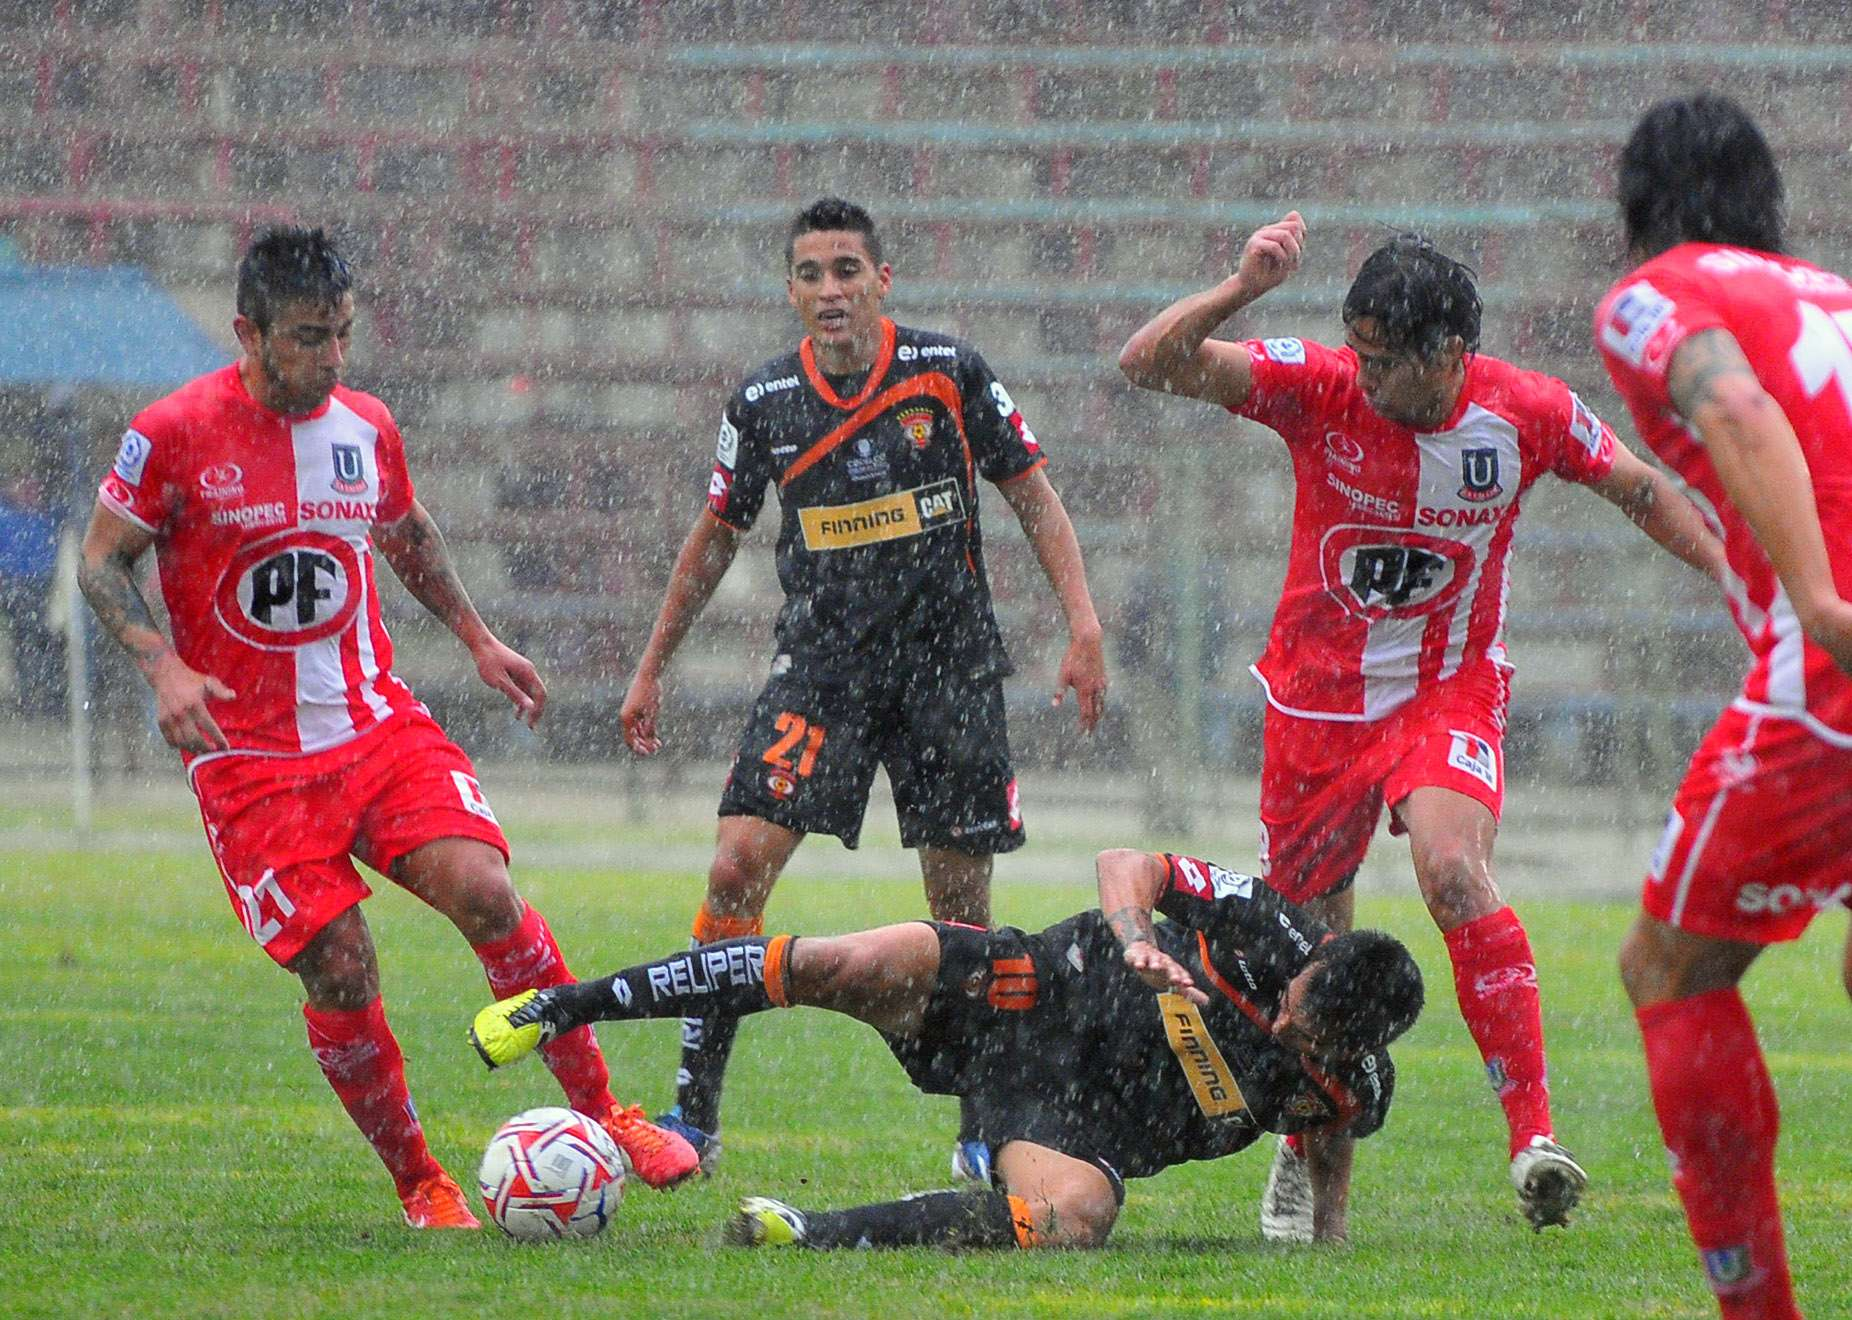 Imgenes del triunfo de Cobreloa bajo la lluvia de La Calera